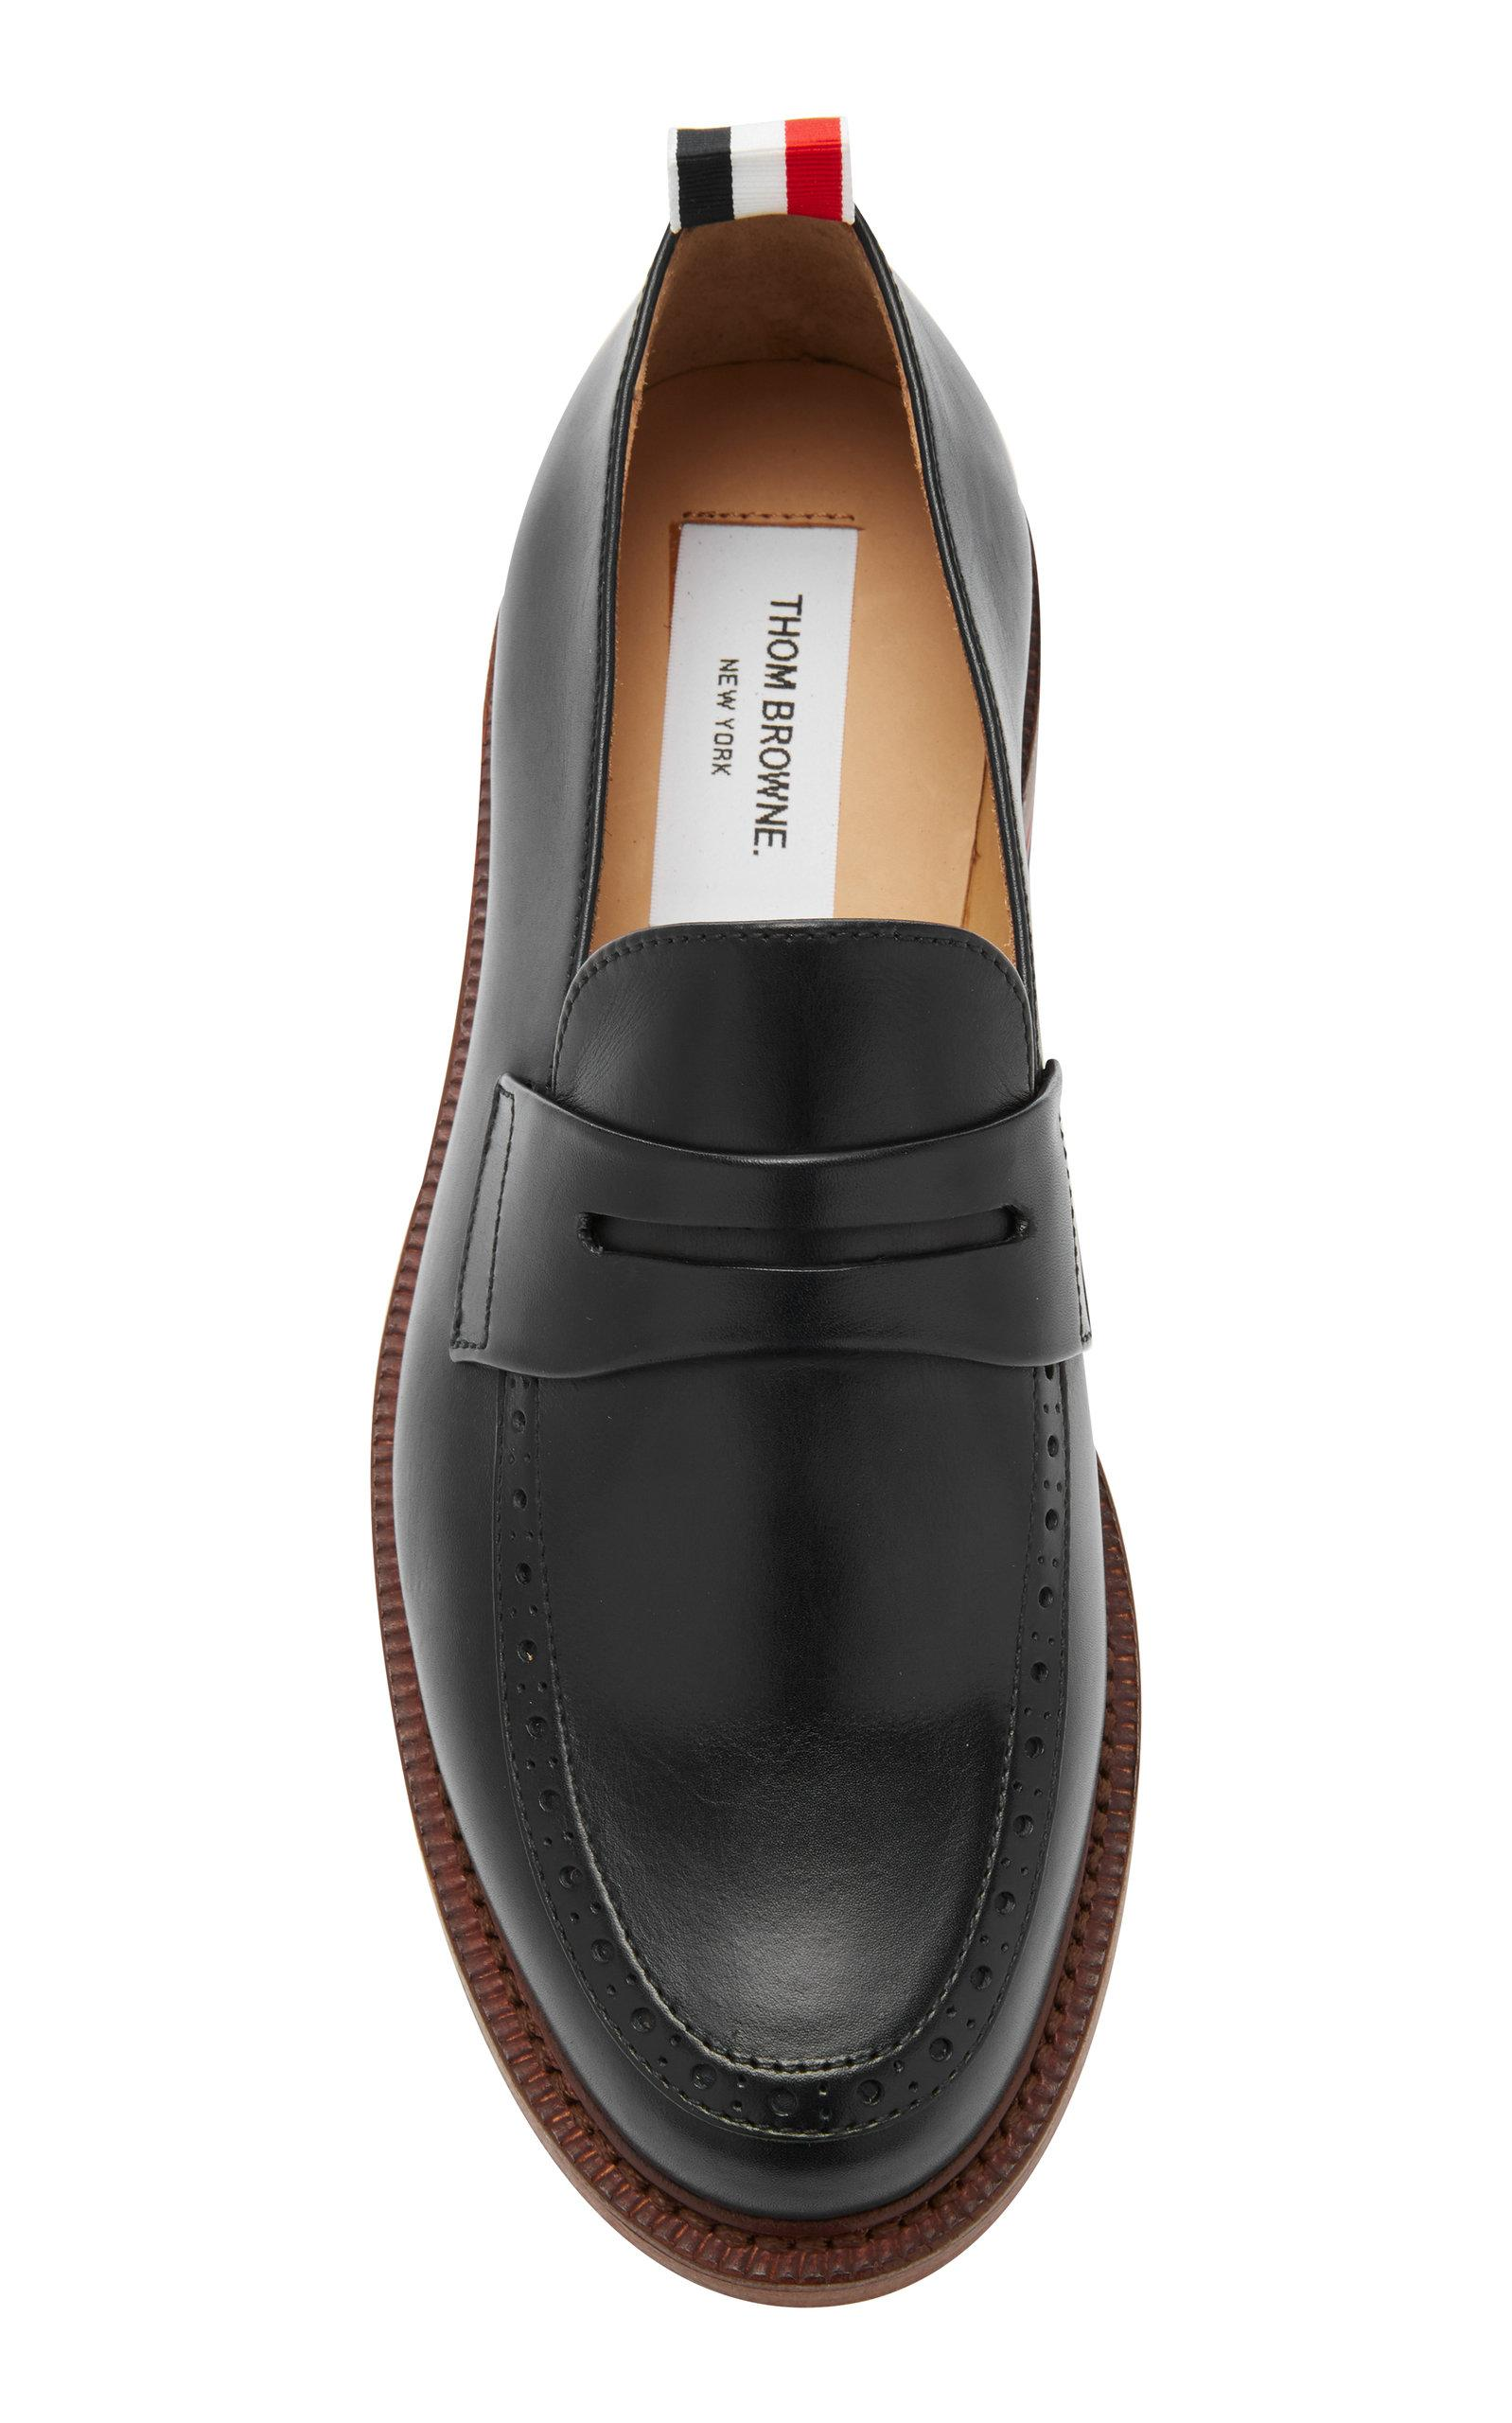 Thom Browne Exclusive Leather Loafers in Navy (Blue) for Men